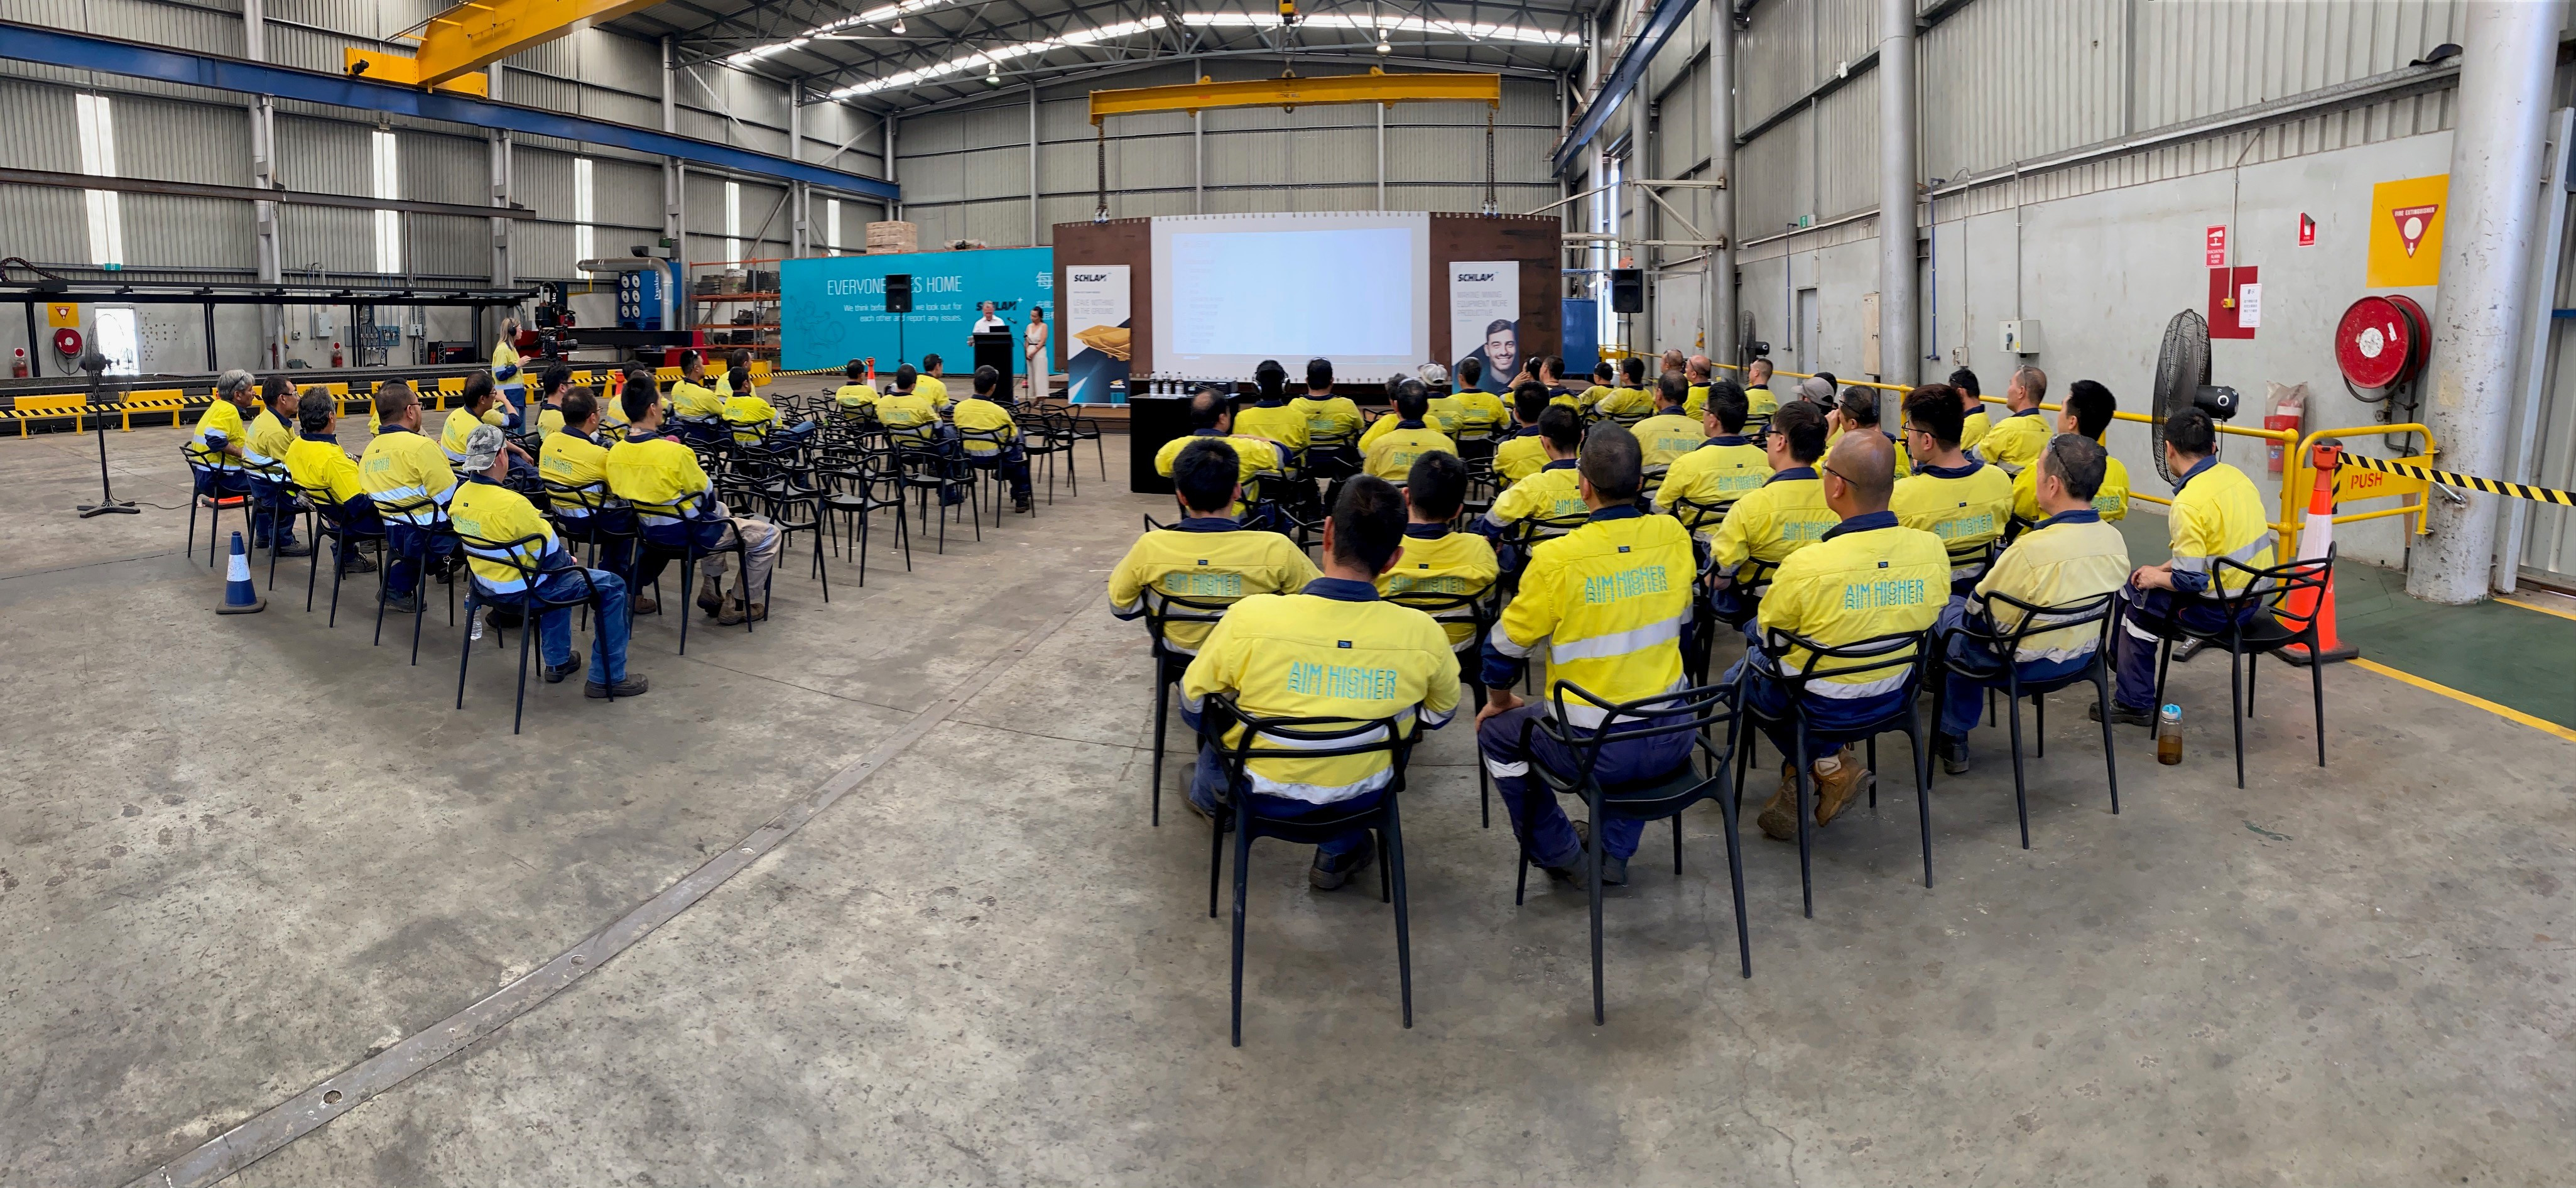 Schlam Townhall with employees seated